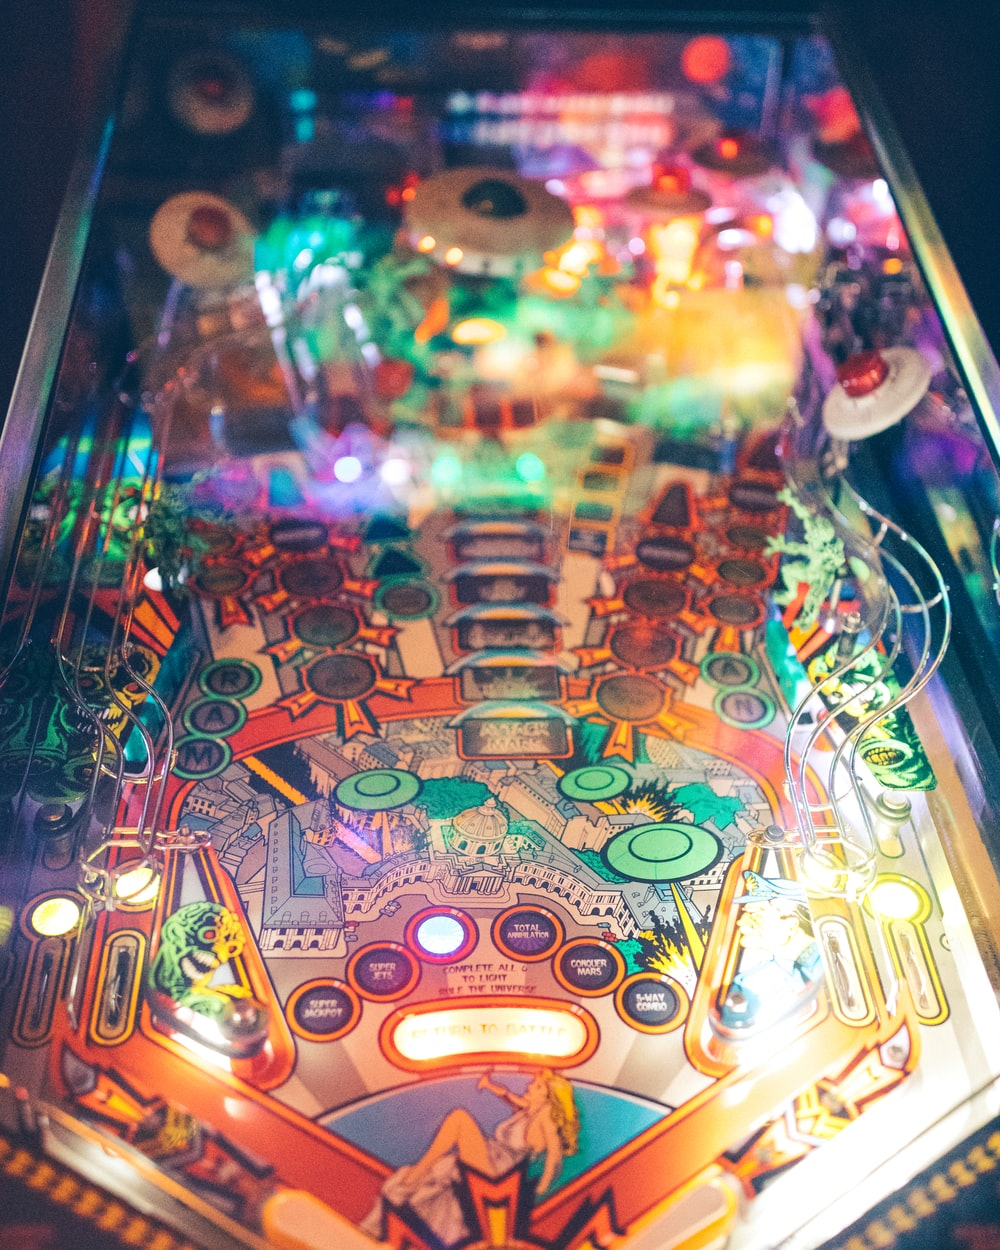 blue and multicolored pinball machine close-up photography